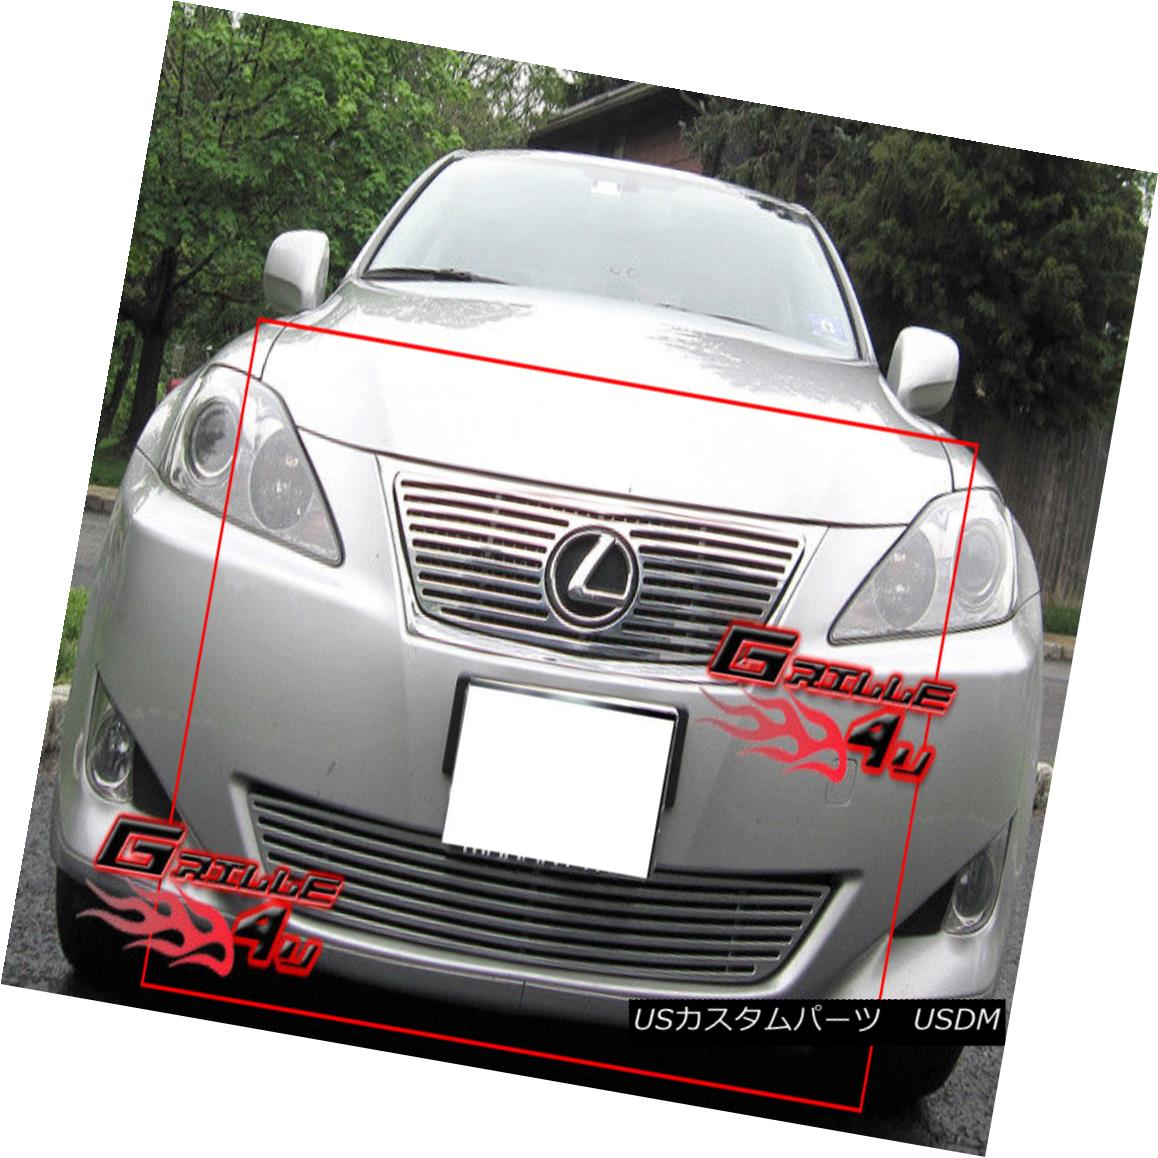 グリル Fits 2006-2008 Lexus IS 250 IS 350 Perimeter Billet Grille Combo 2006-2008 Lexus IS 250 IS 350 Perimeter Billet Grilleコンボ